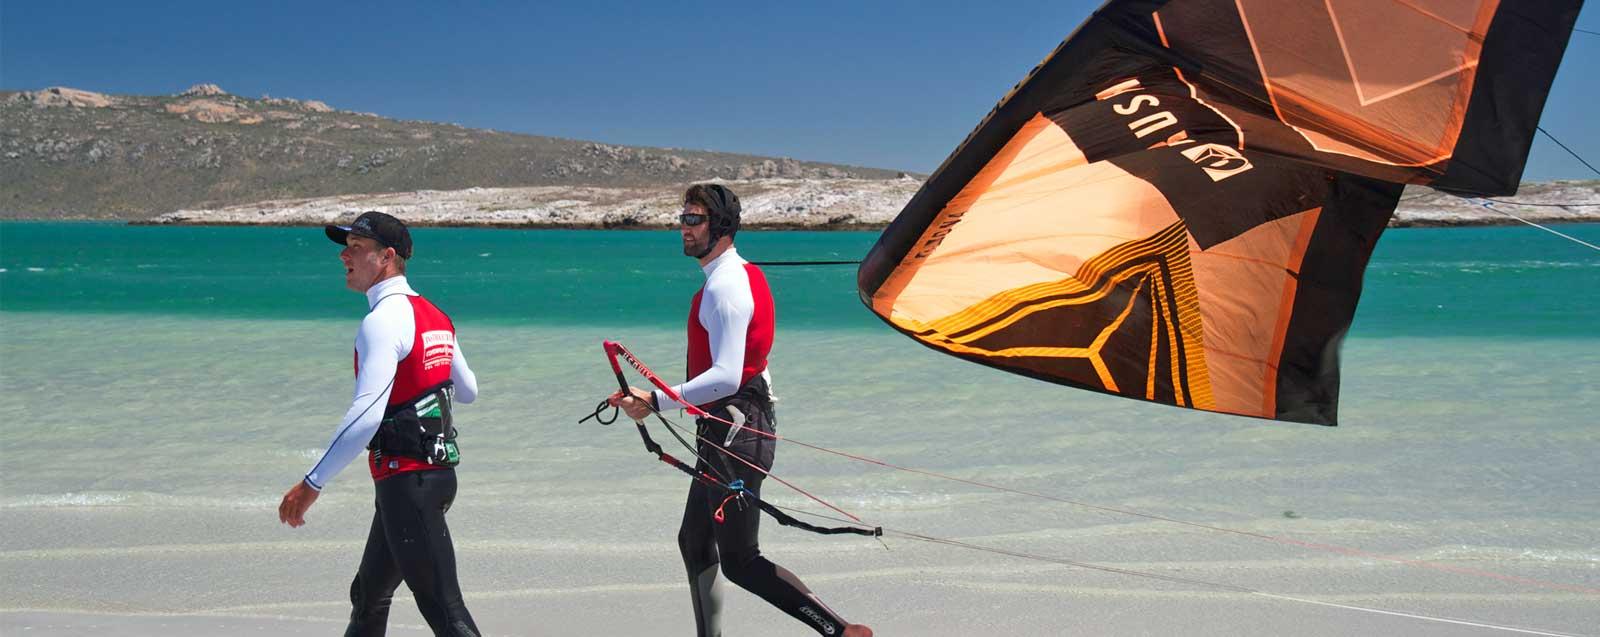 Kitesurfing instructors course langebaan